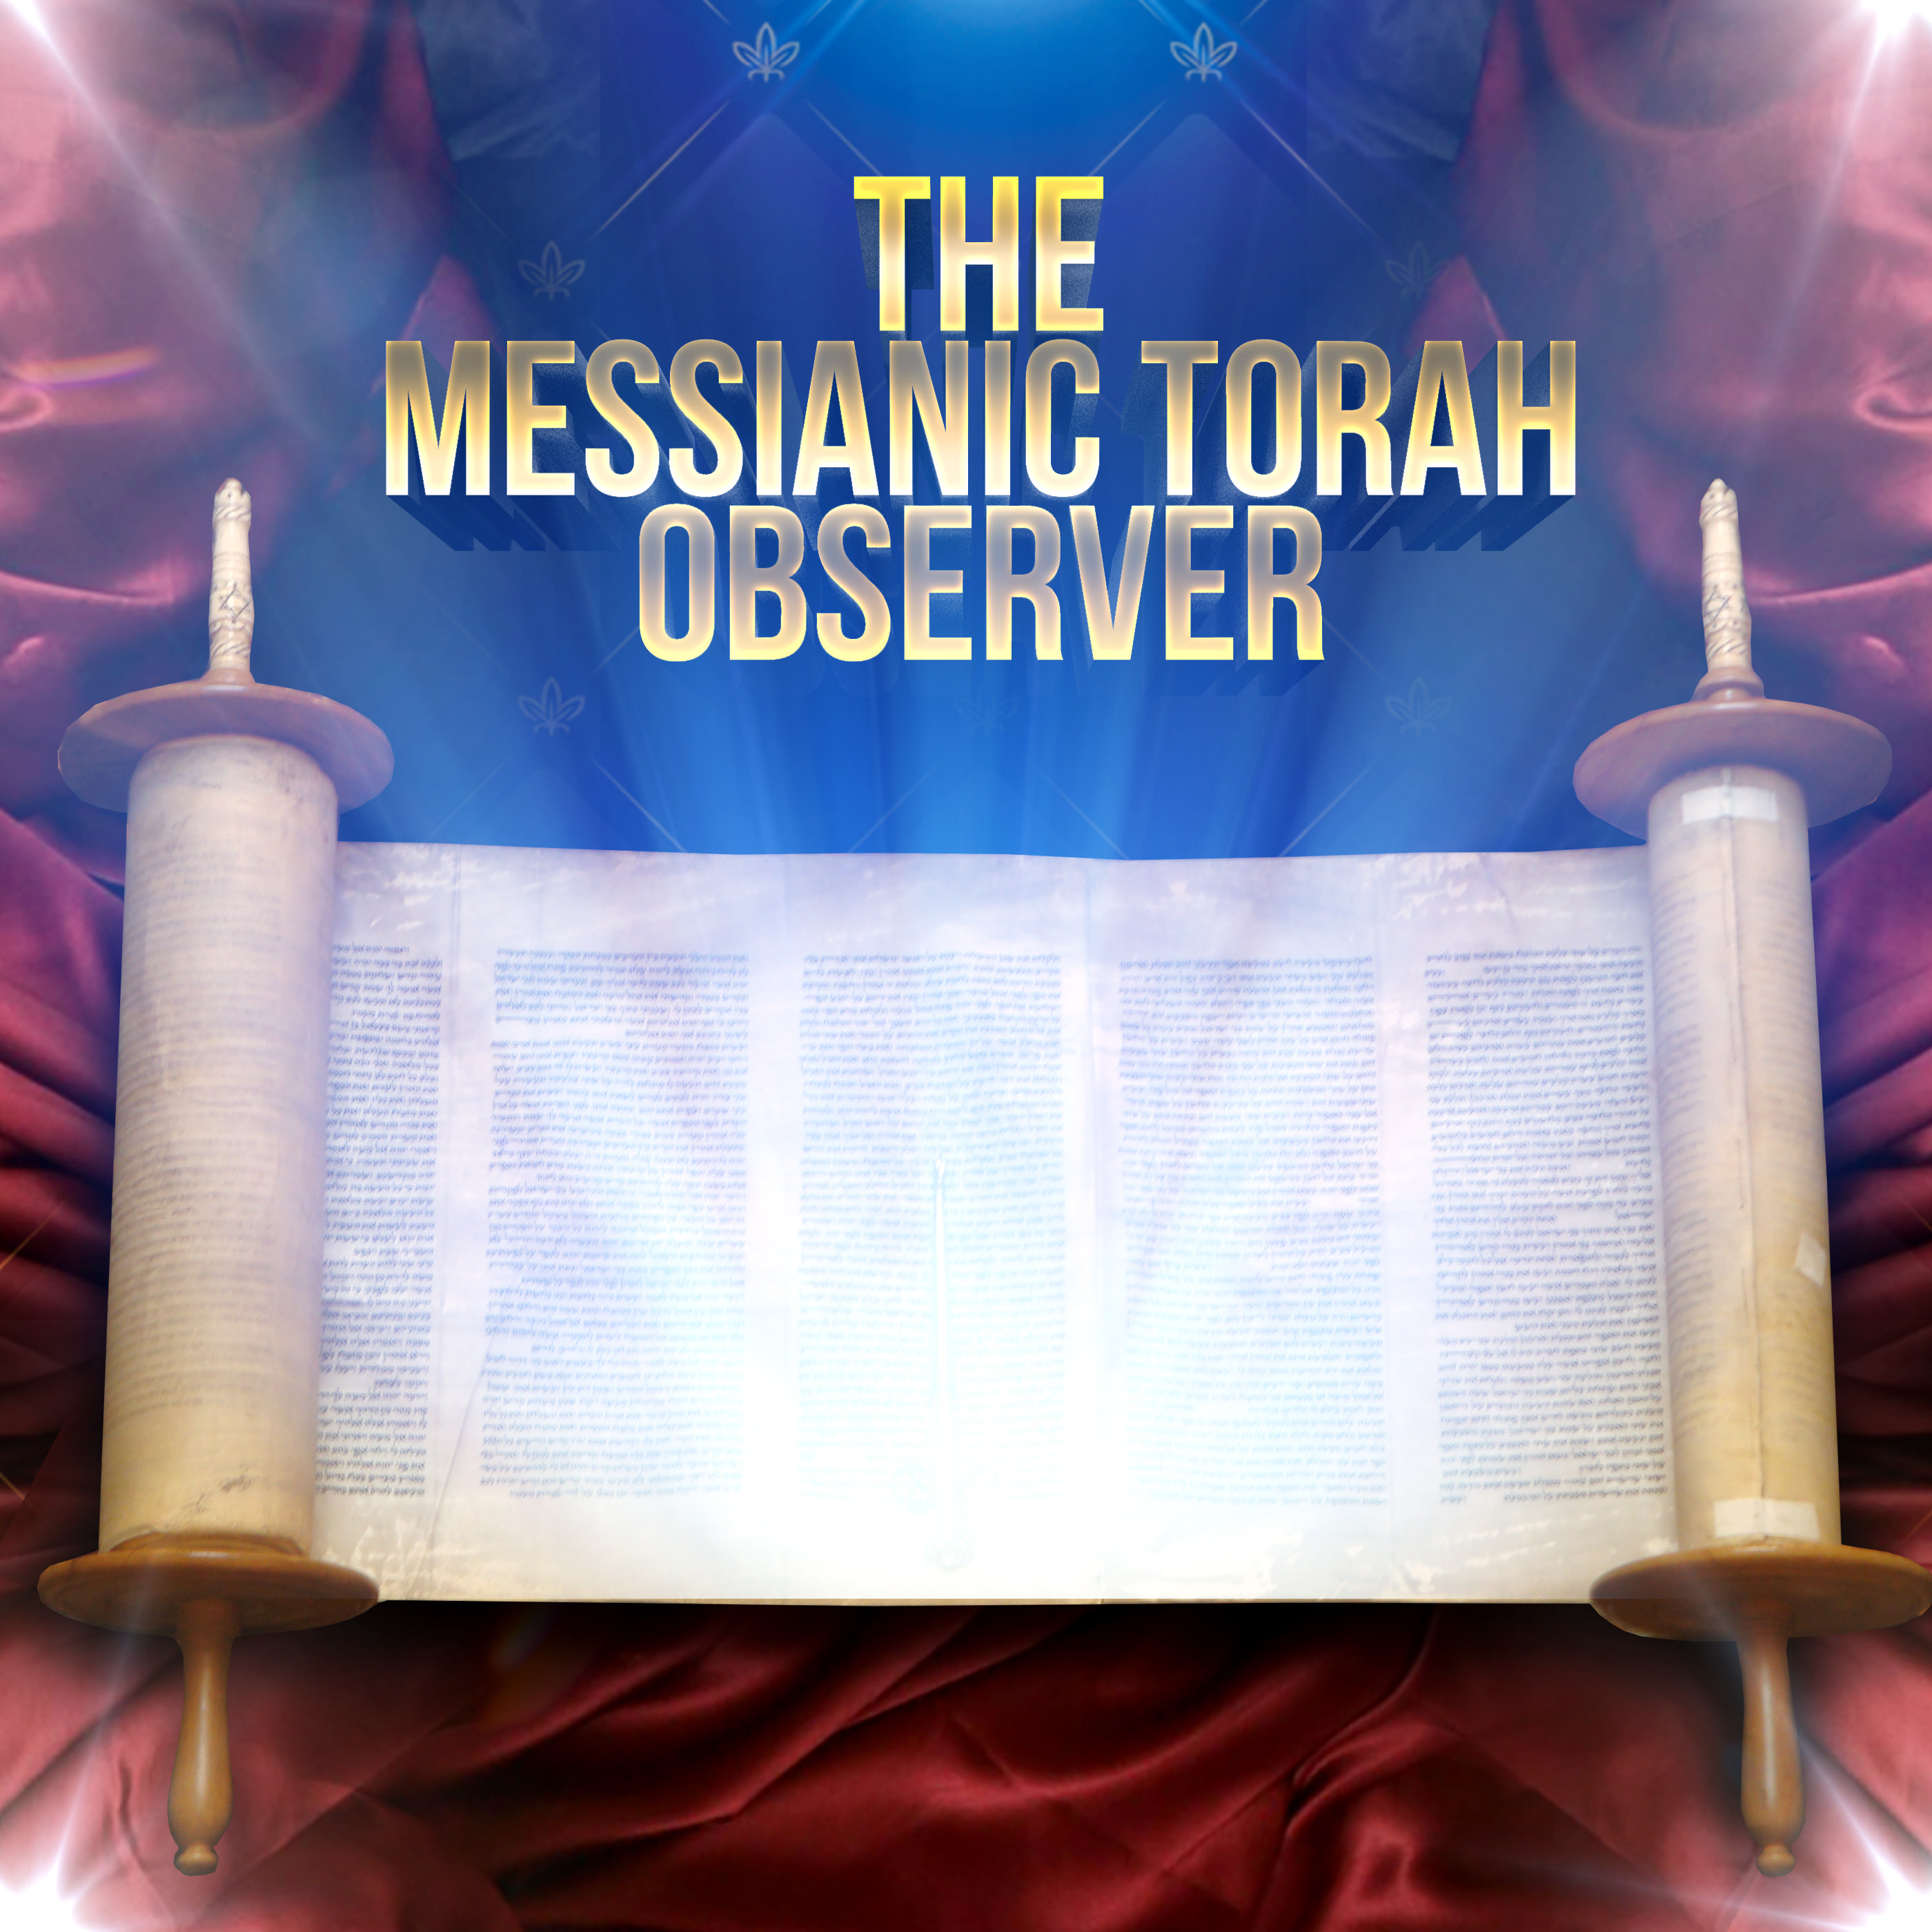 The Messianic Torah Observer - Welcome Page